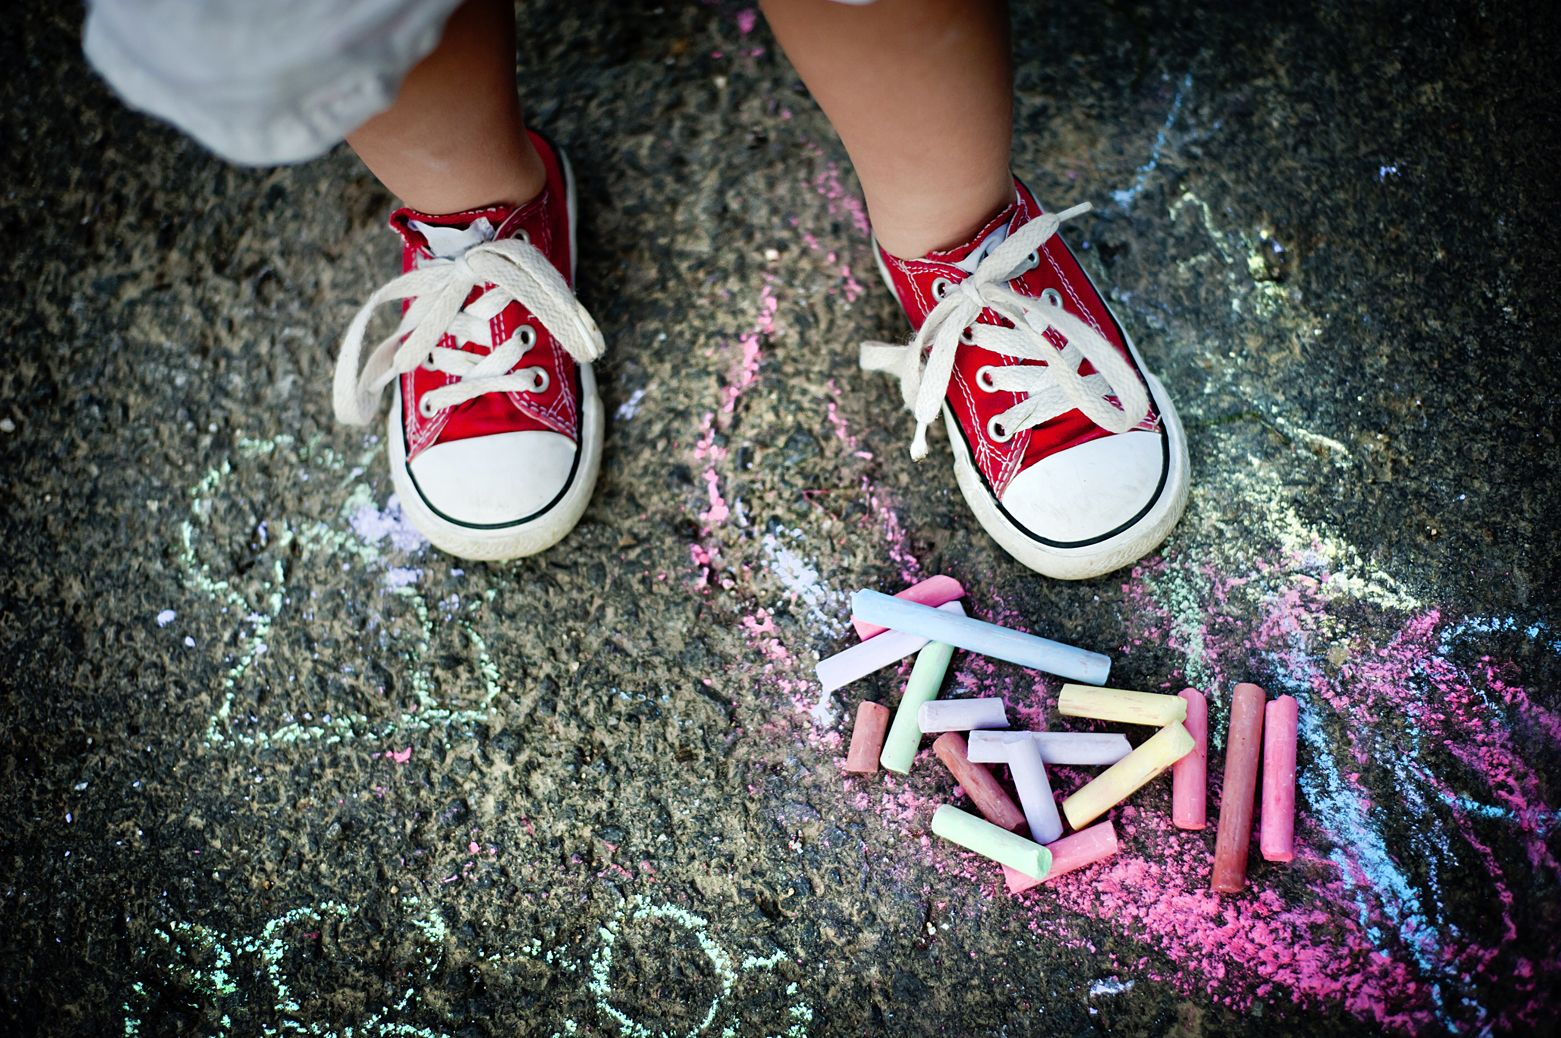 child's shoes and chalk on the ground